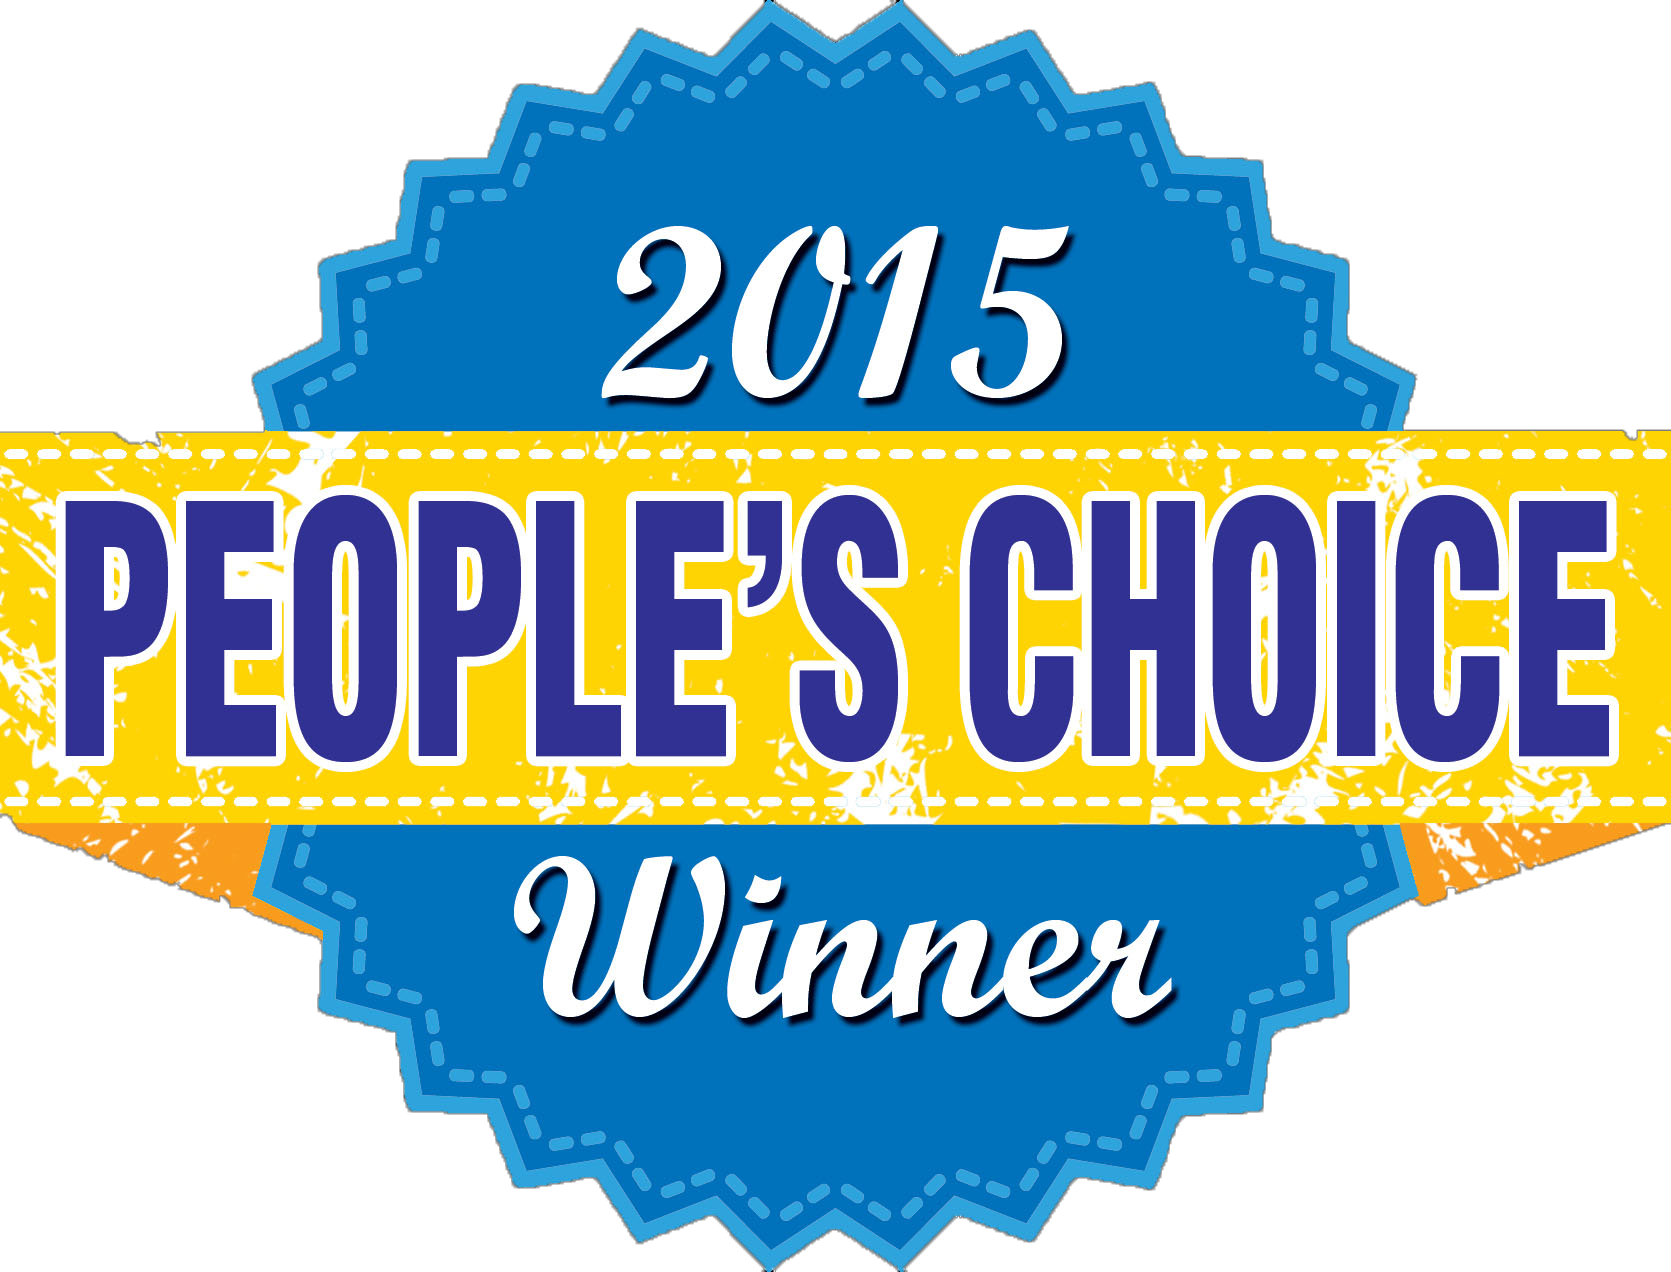 Peoples Choice 2015